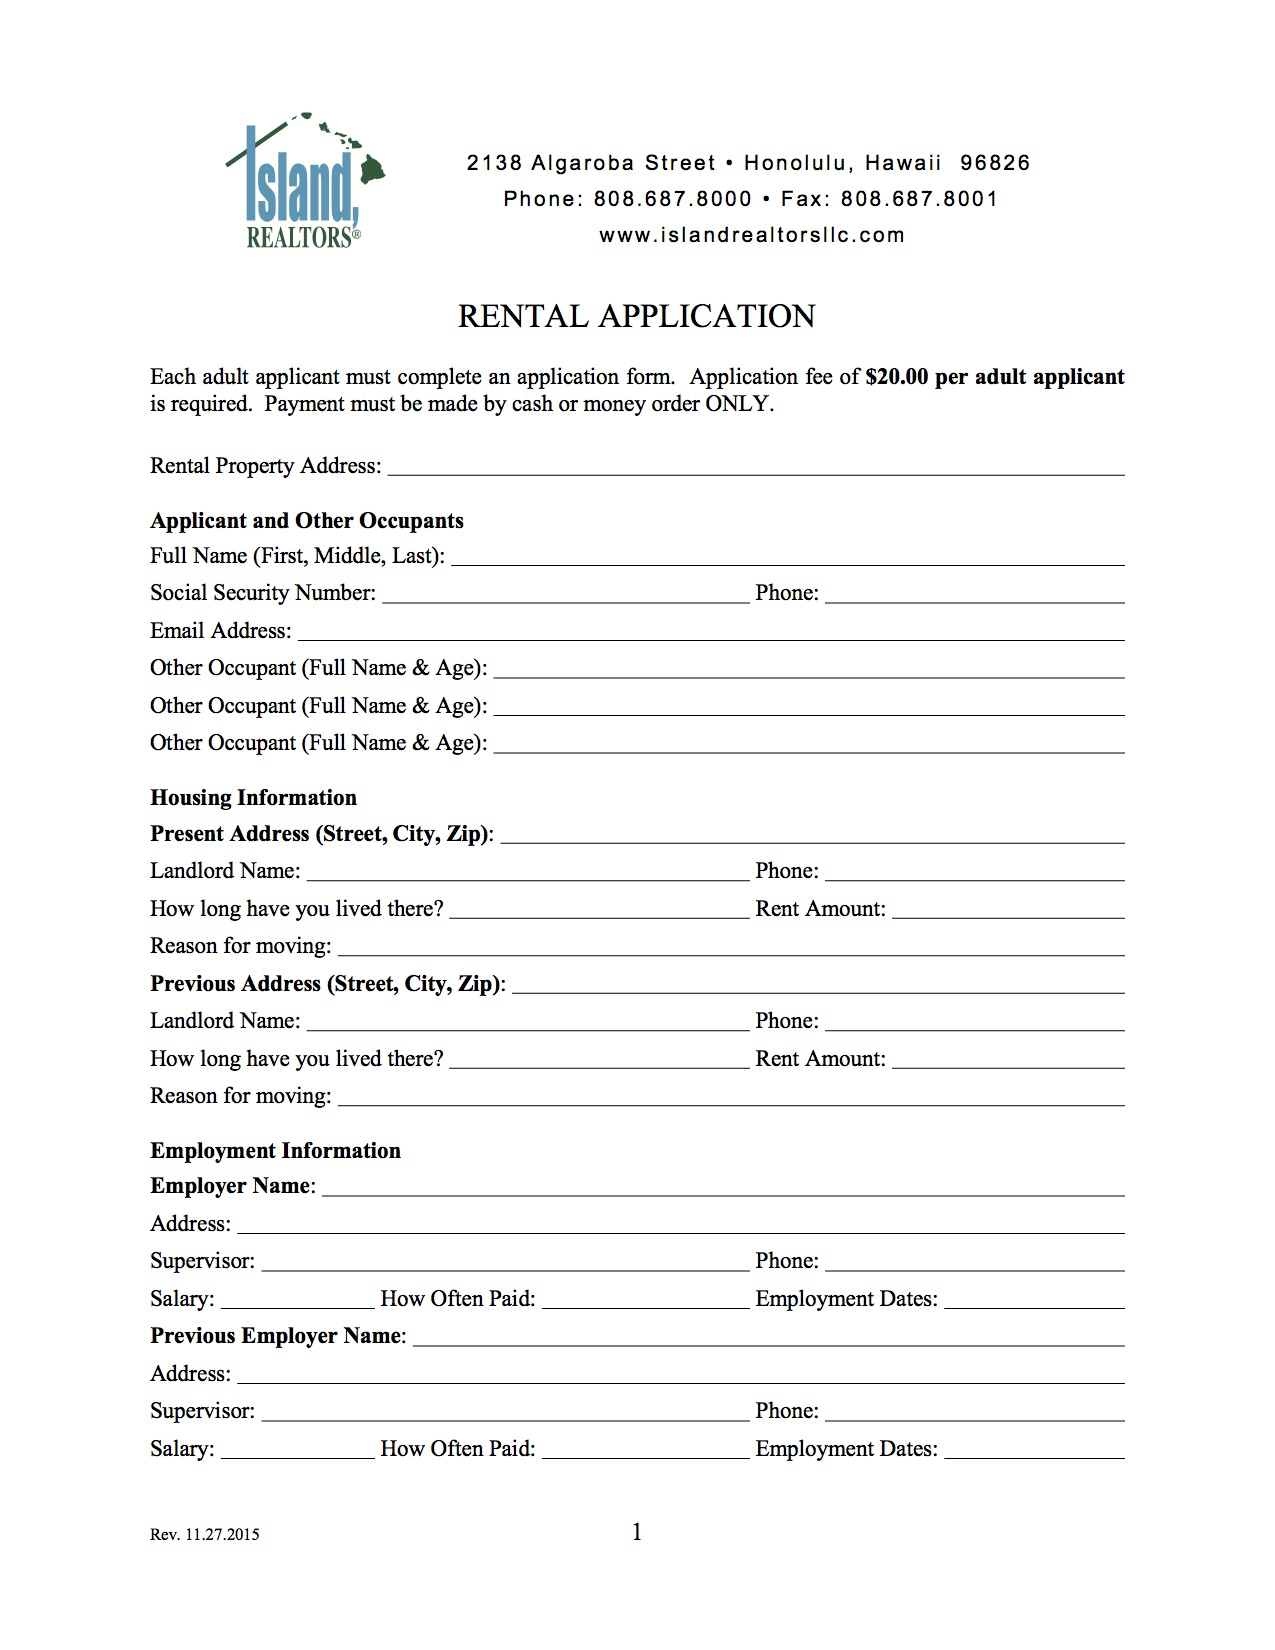 Any Missing Information Or Documentation Will Delay The Processing Of The  Application. A $20 Application Fee Is Required For Each Adult Applicant.